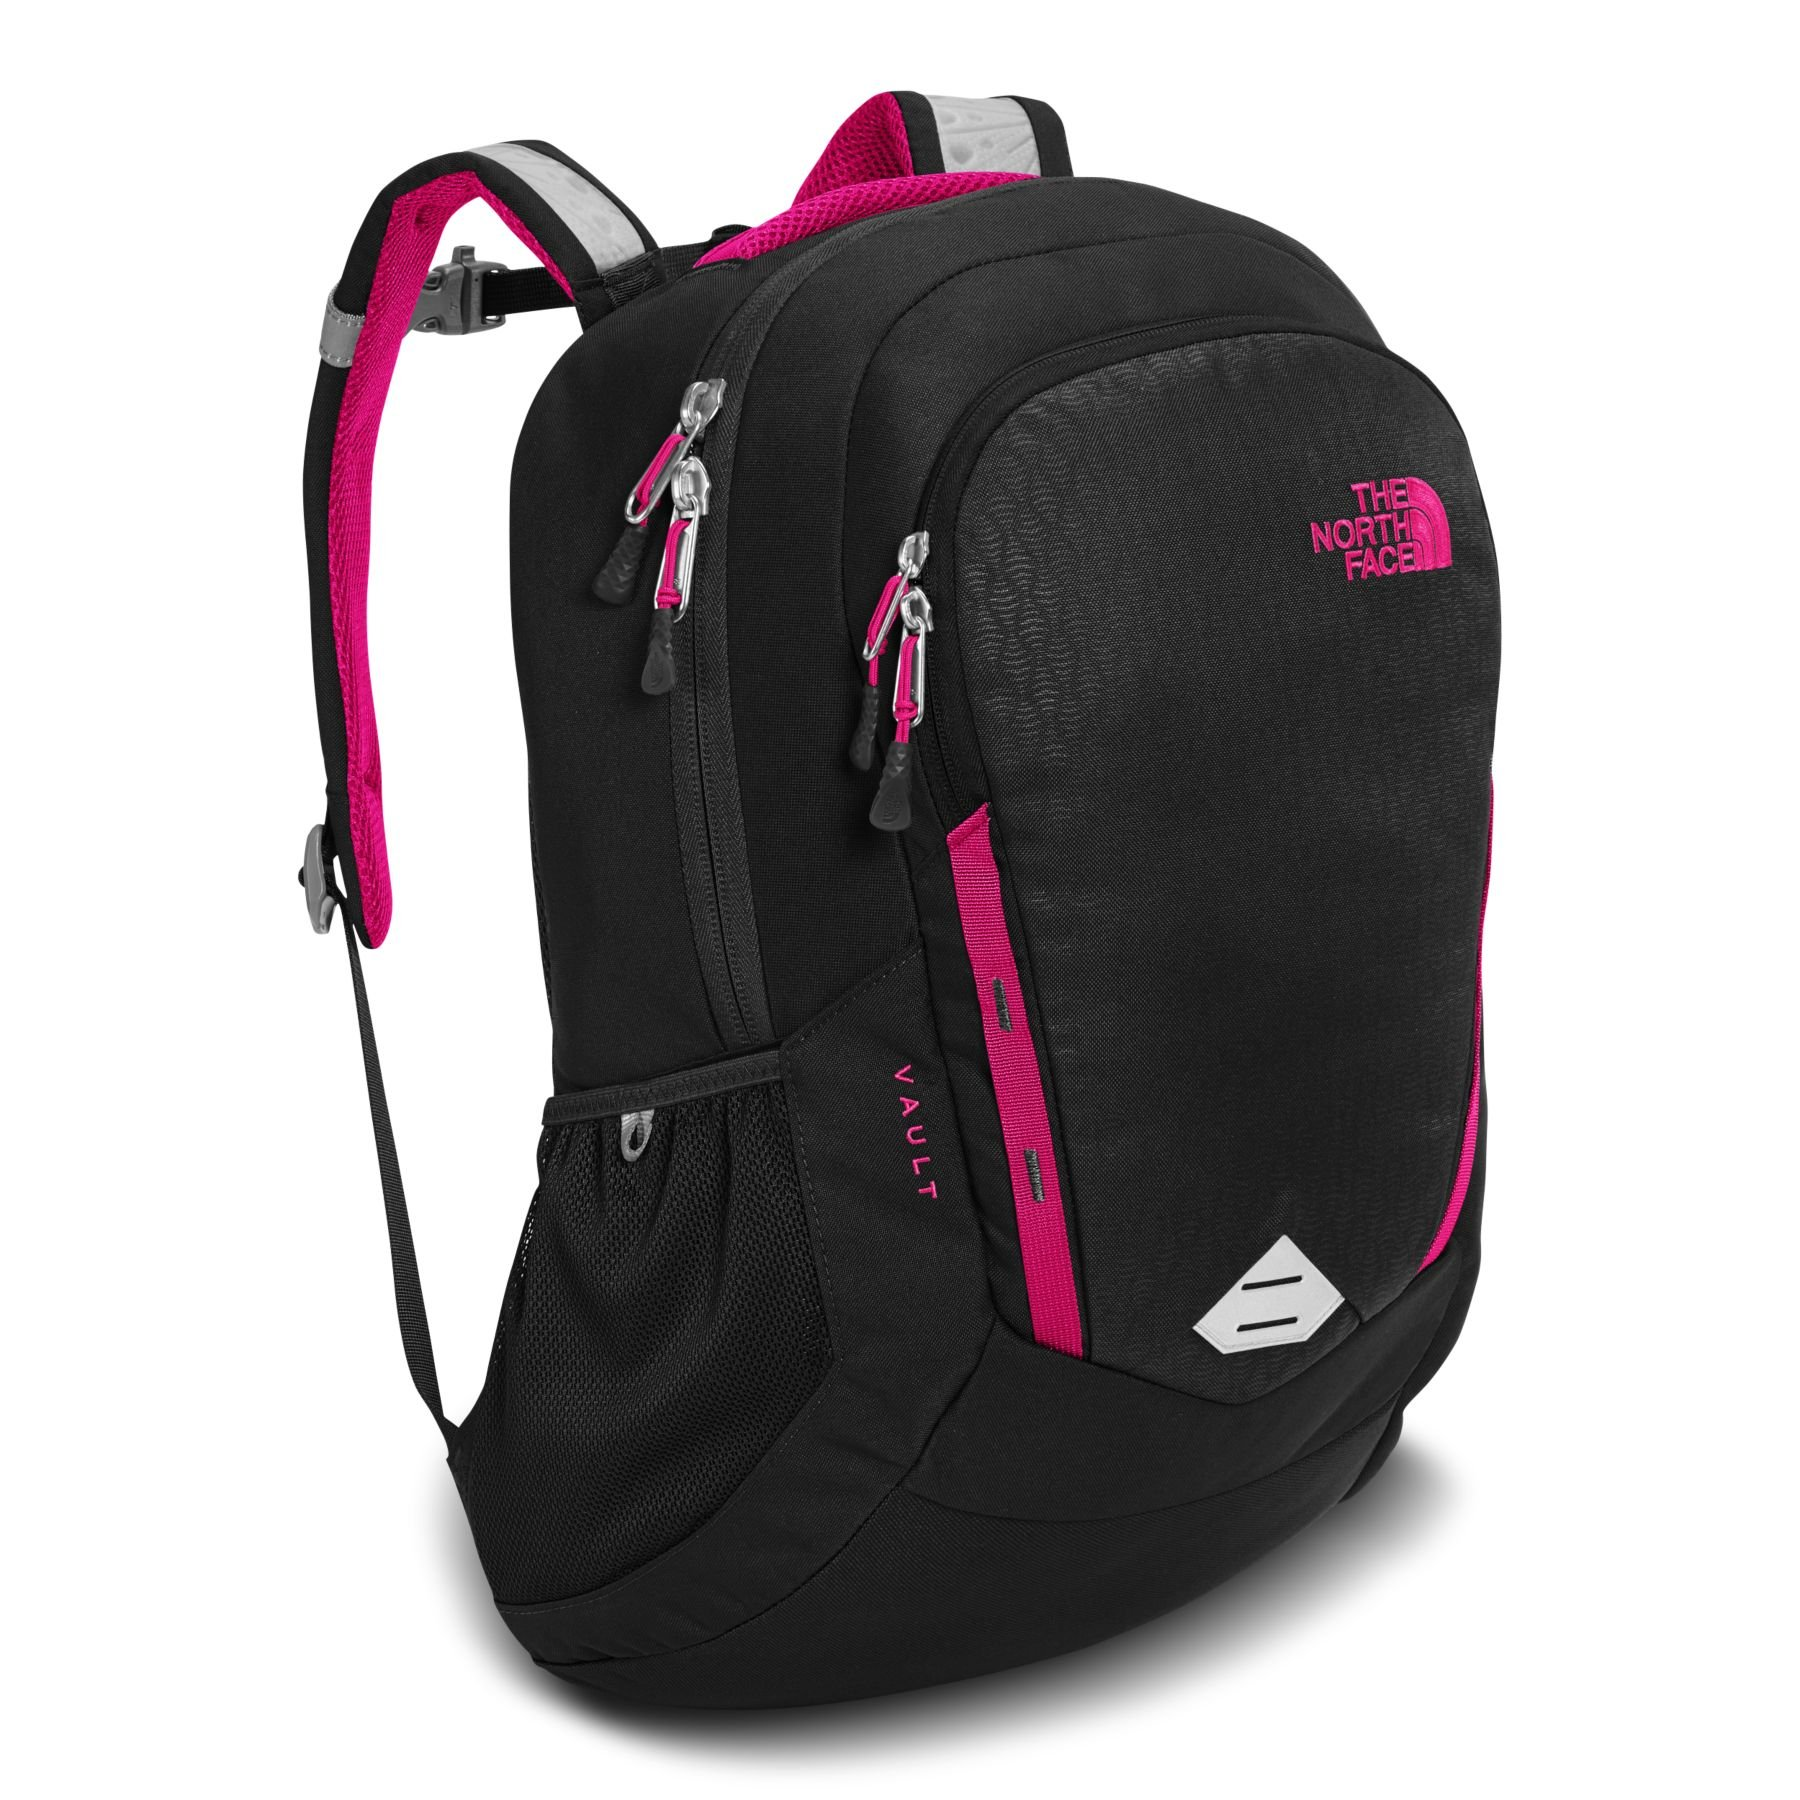 The North Face Women's Vault Backpack - TNF Black Emboss & Petticoat Pink - OS (Past Season)